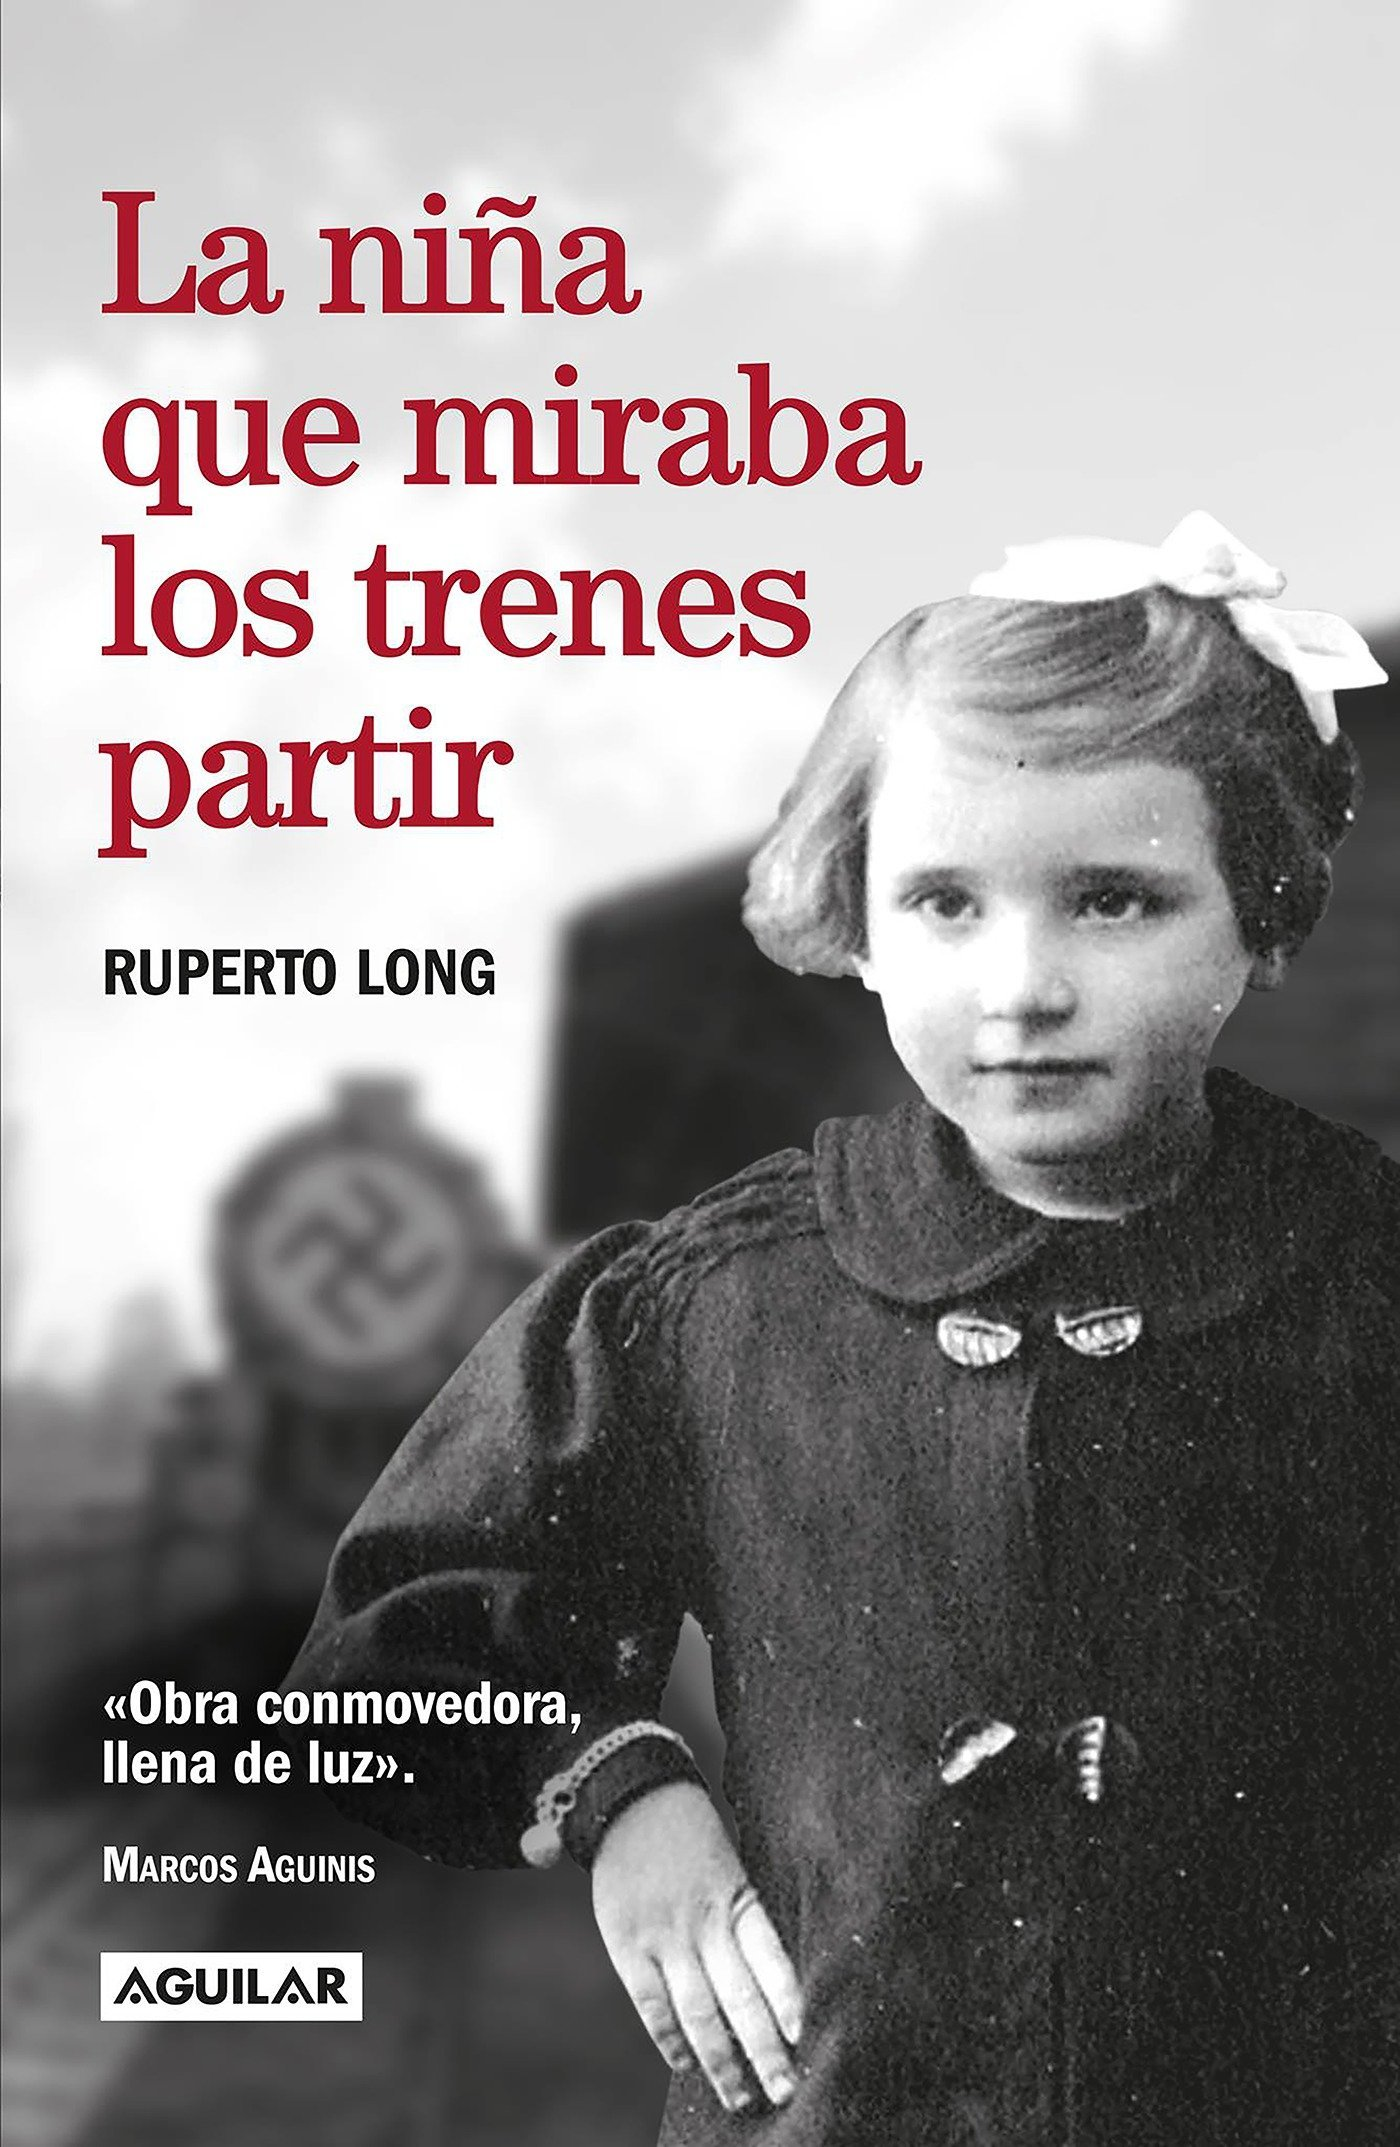 Amazon.com: La niña que miraba los trenes partir / The Girl Who Watched the Trains Leave (Spanish Edition) (9789585425026): Ruperto Long: Books